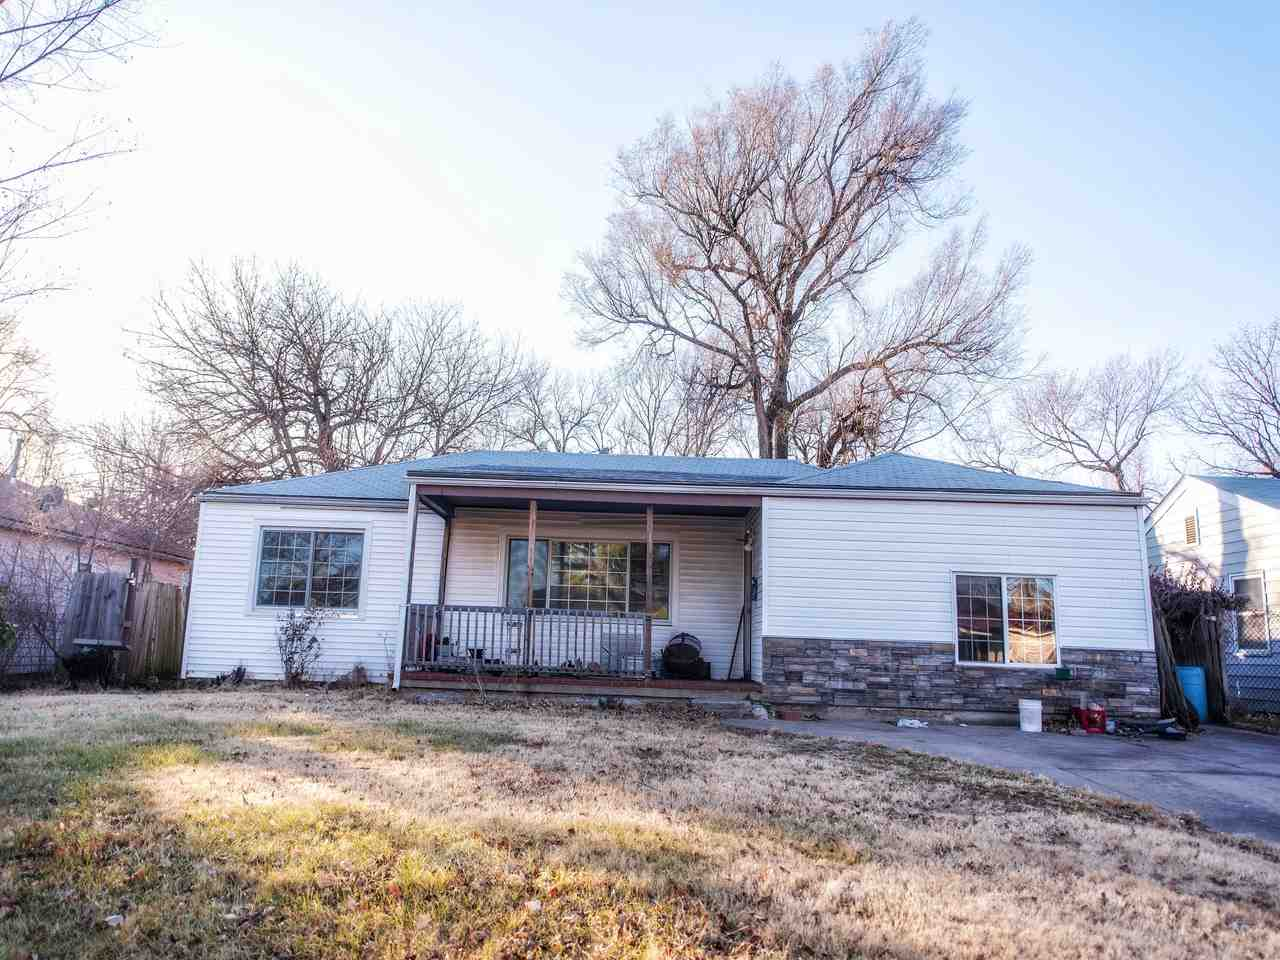 Attention investors Or anyone who is looking for a deal! This home is standing strong and would make